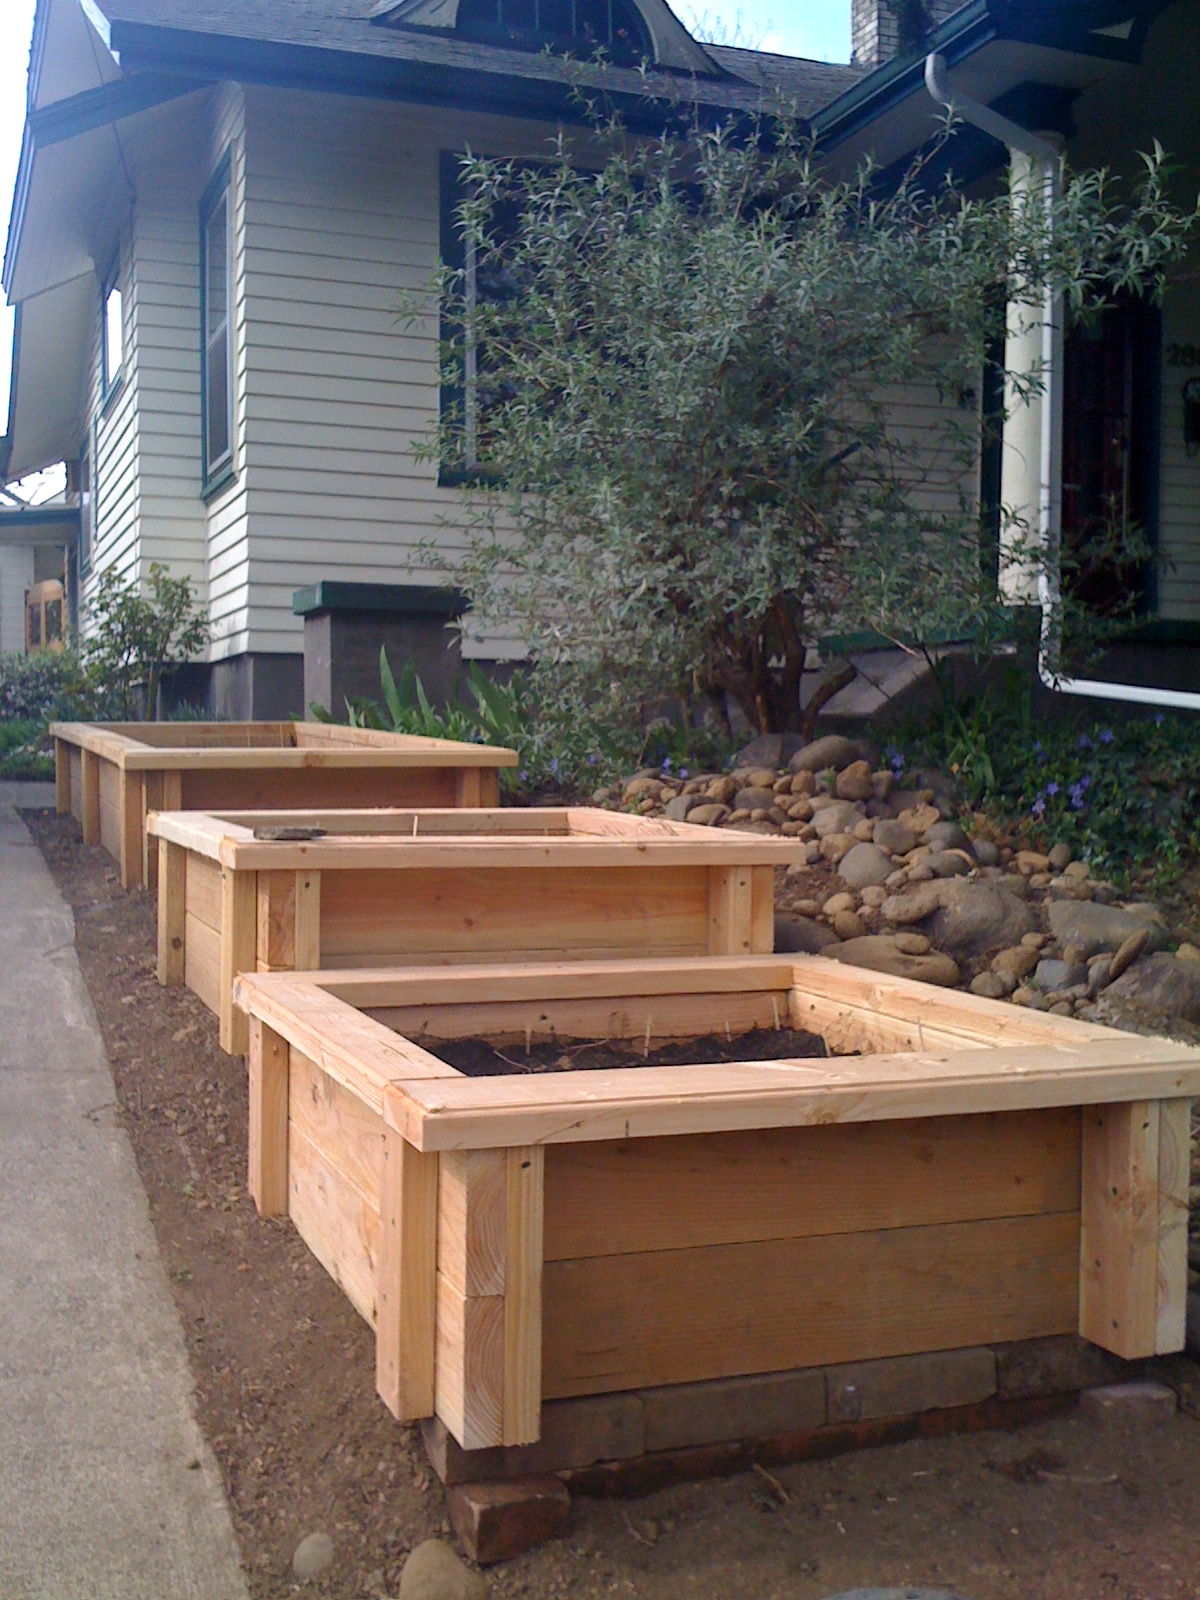 Big Garden Planters Building Planter Boxes Andy Idsinga Make Fix Share Repeat